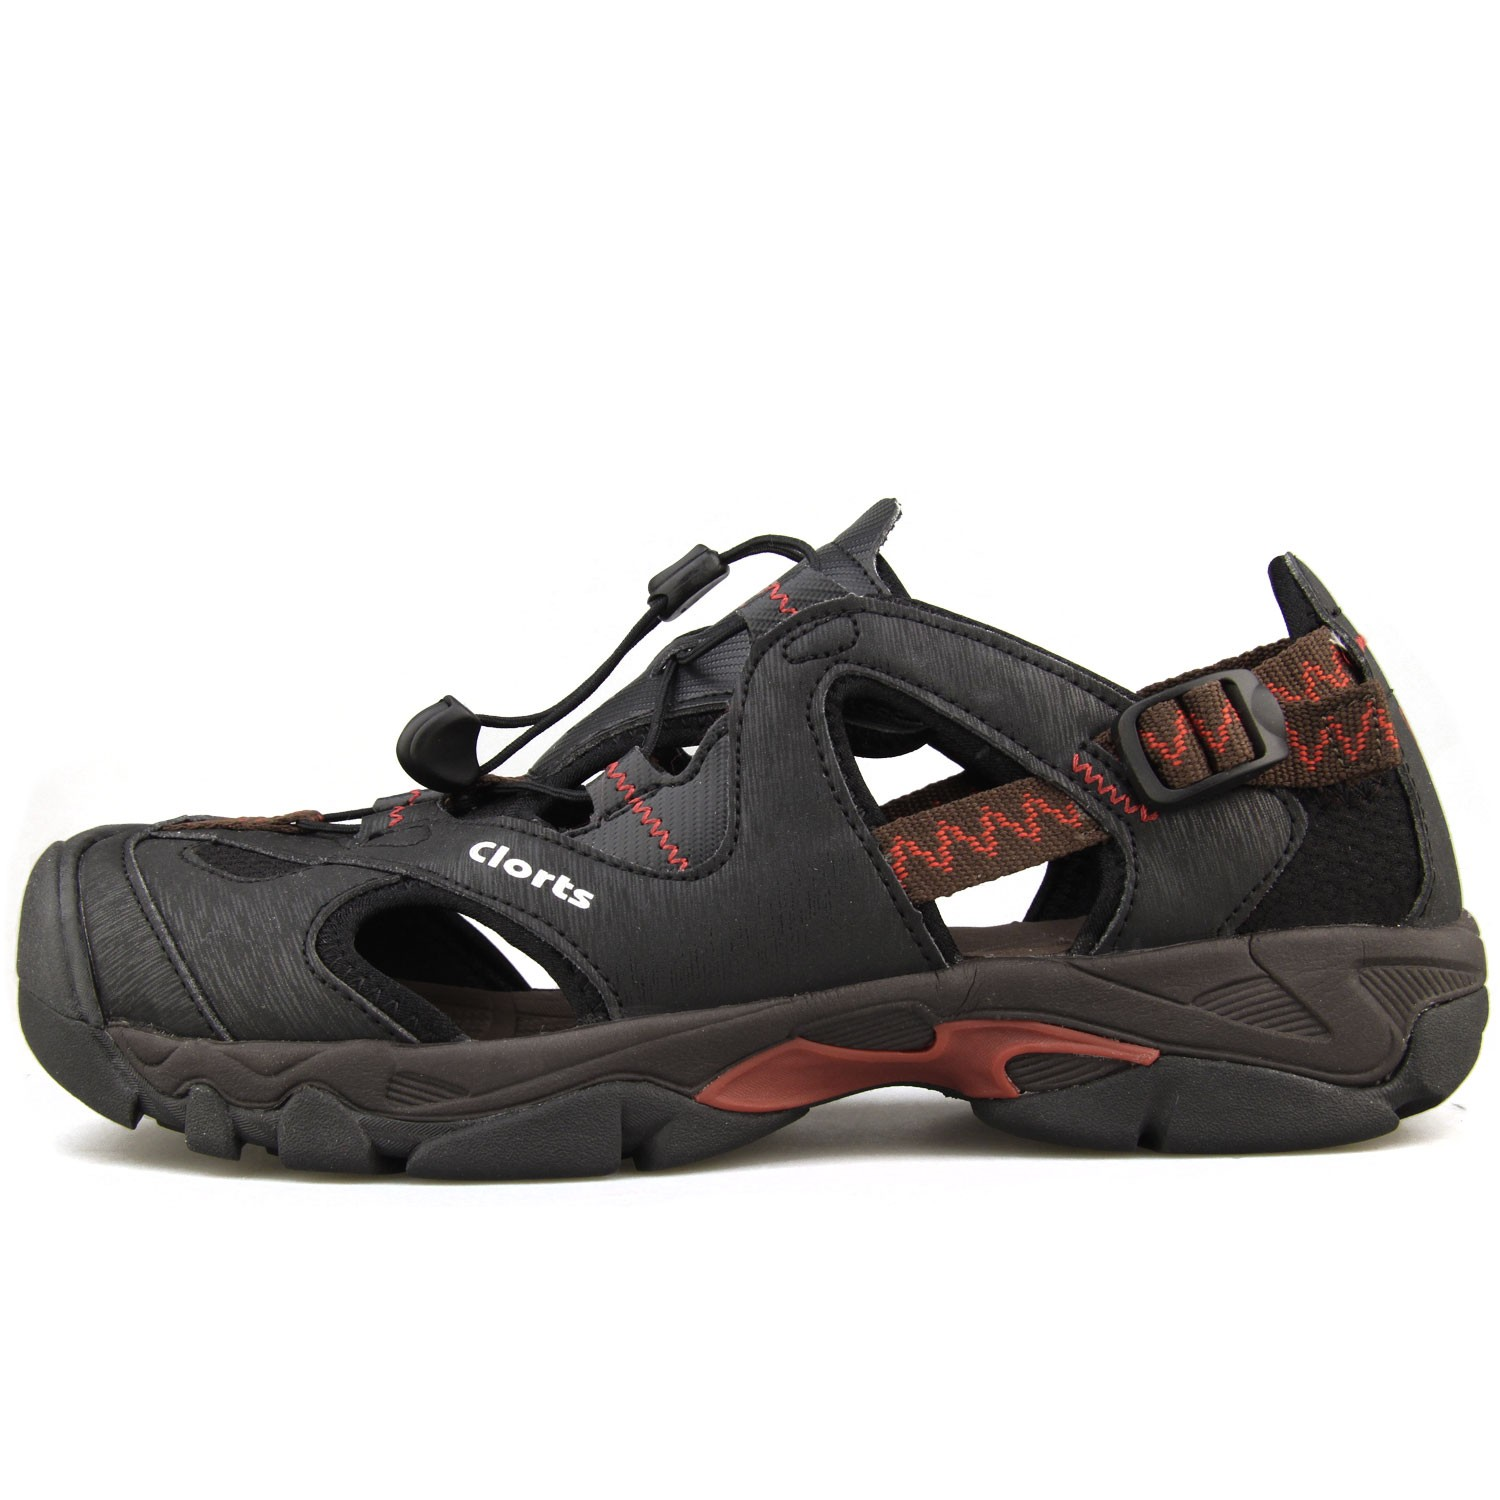 Hiking And Water Sports Sandal Manufacturers, Hiking And Water Sports Sandal Factory, Supply Hiking And Water Sports Sandal